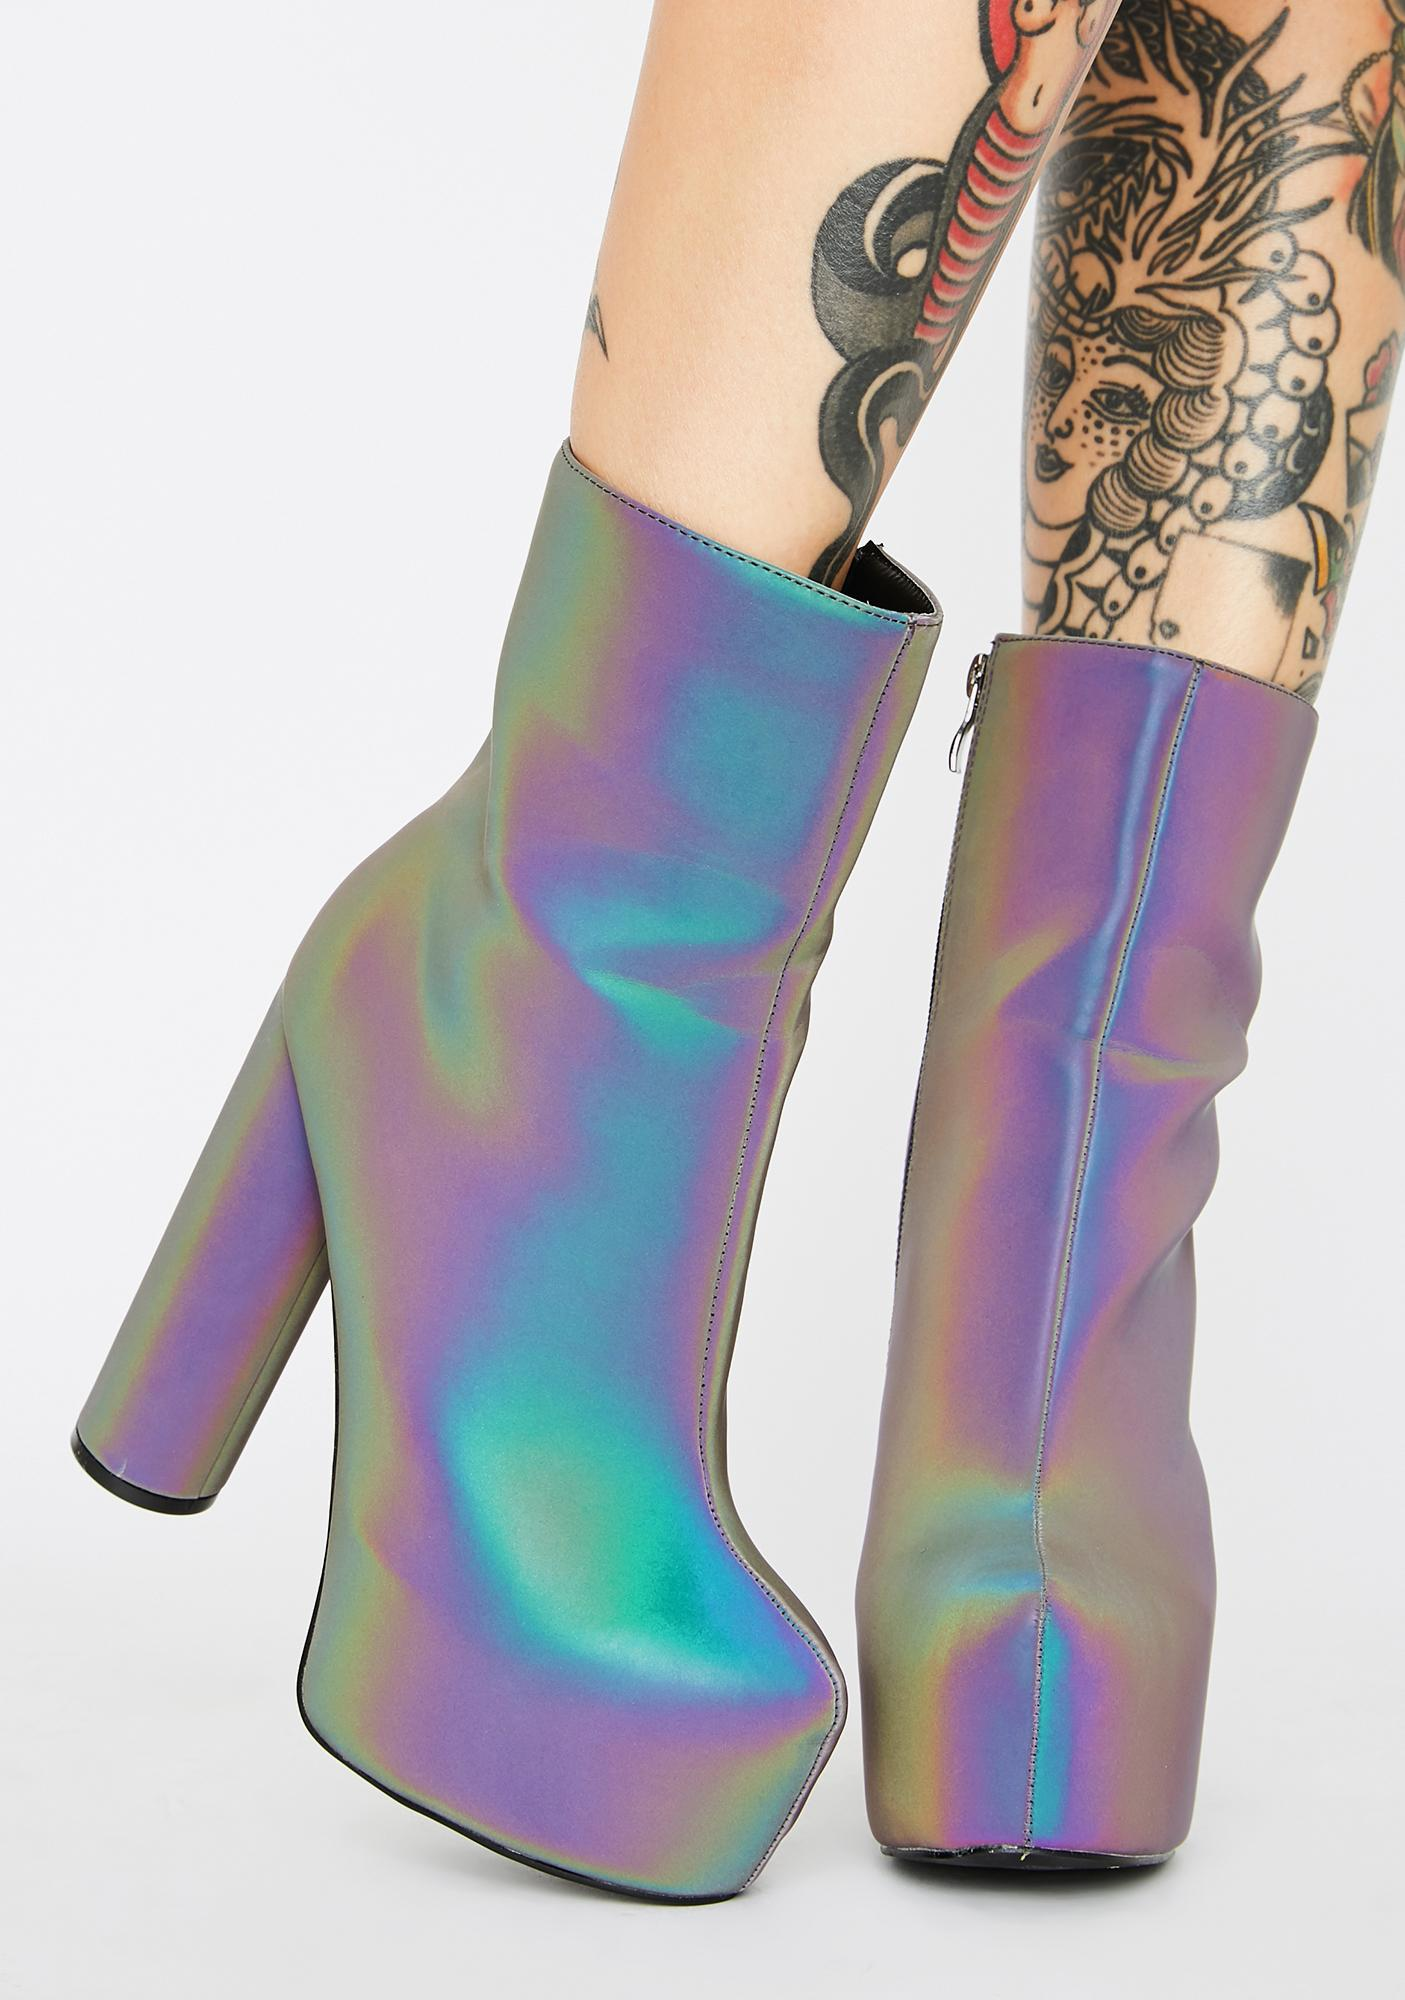 Lemon Drop by Privileged Act Up Reflective Platform Boots